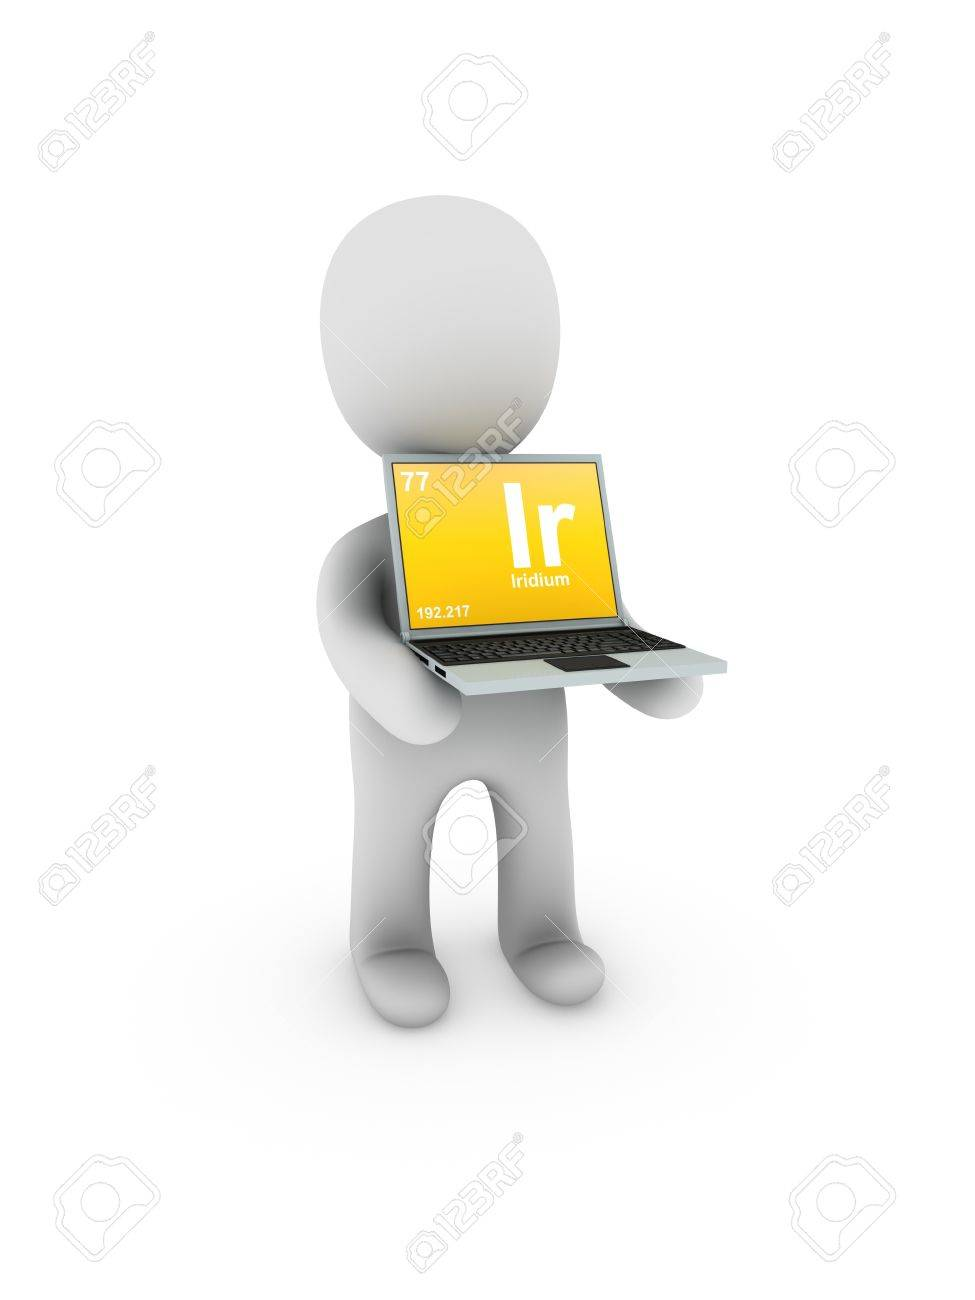 Iridium Symbol On Screen Laptop Stock Photo Picture And Royalty